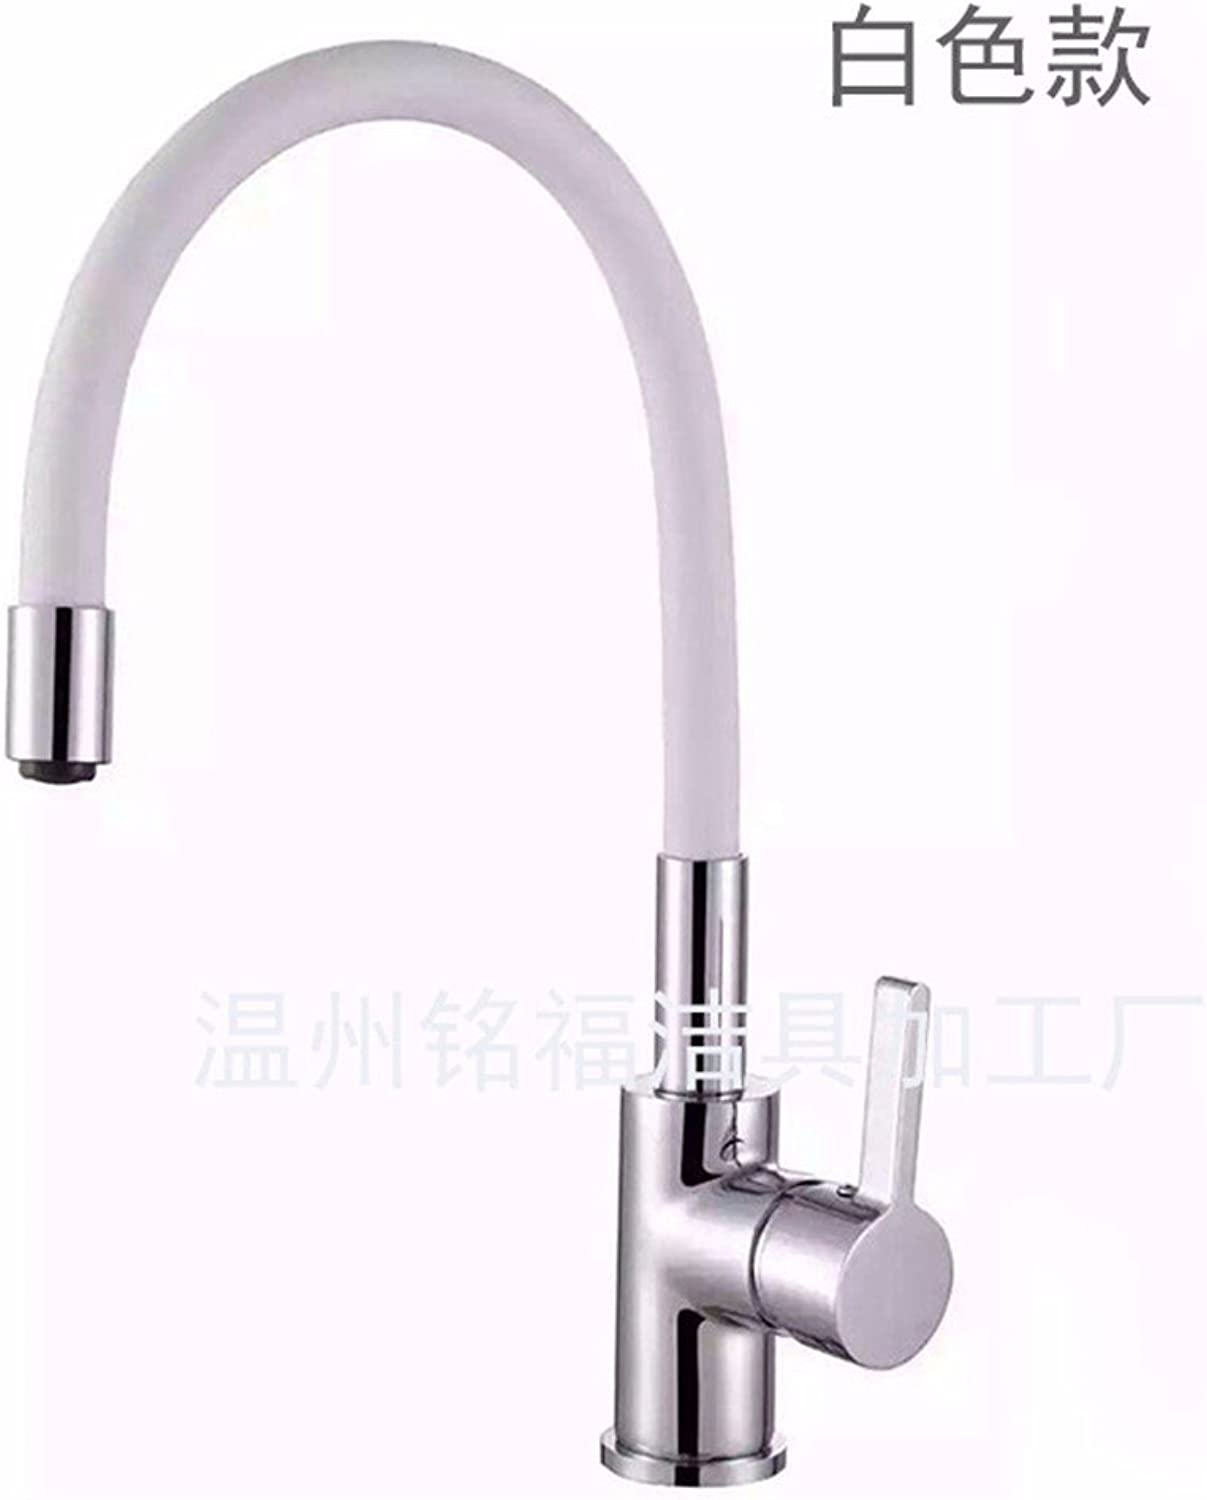 Hlluya Professional Sink Mixer Tap Kitchen Faucet Modern retro stainless steel white brass waterfall bathroom basin faucet kitchen to bend